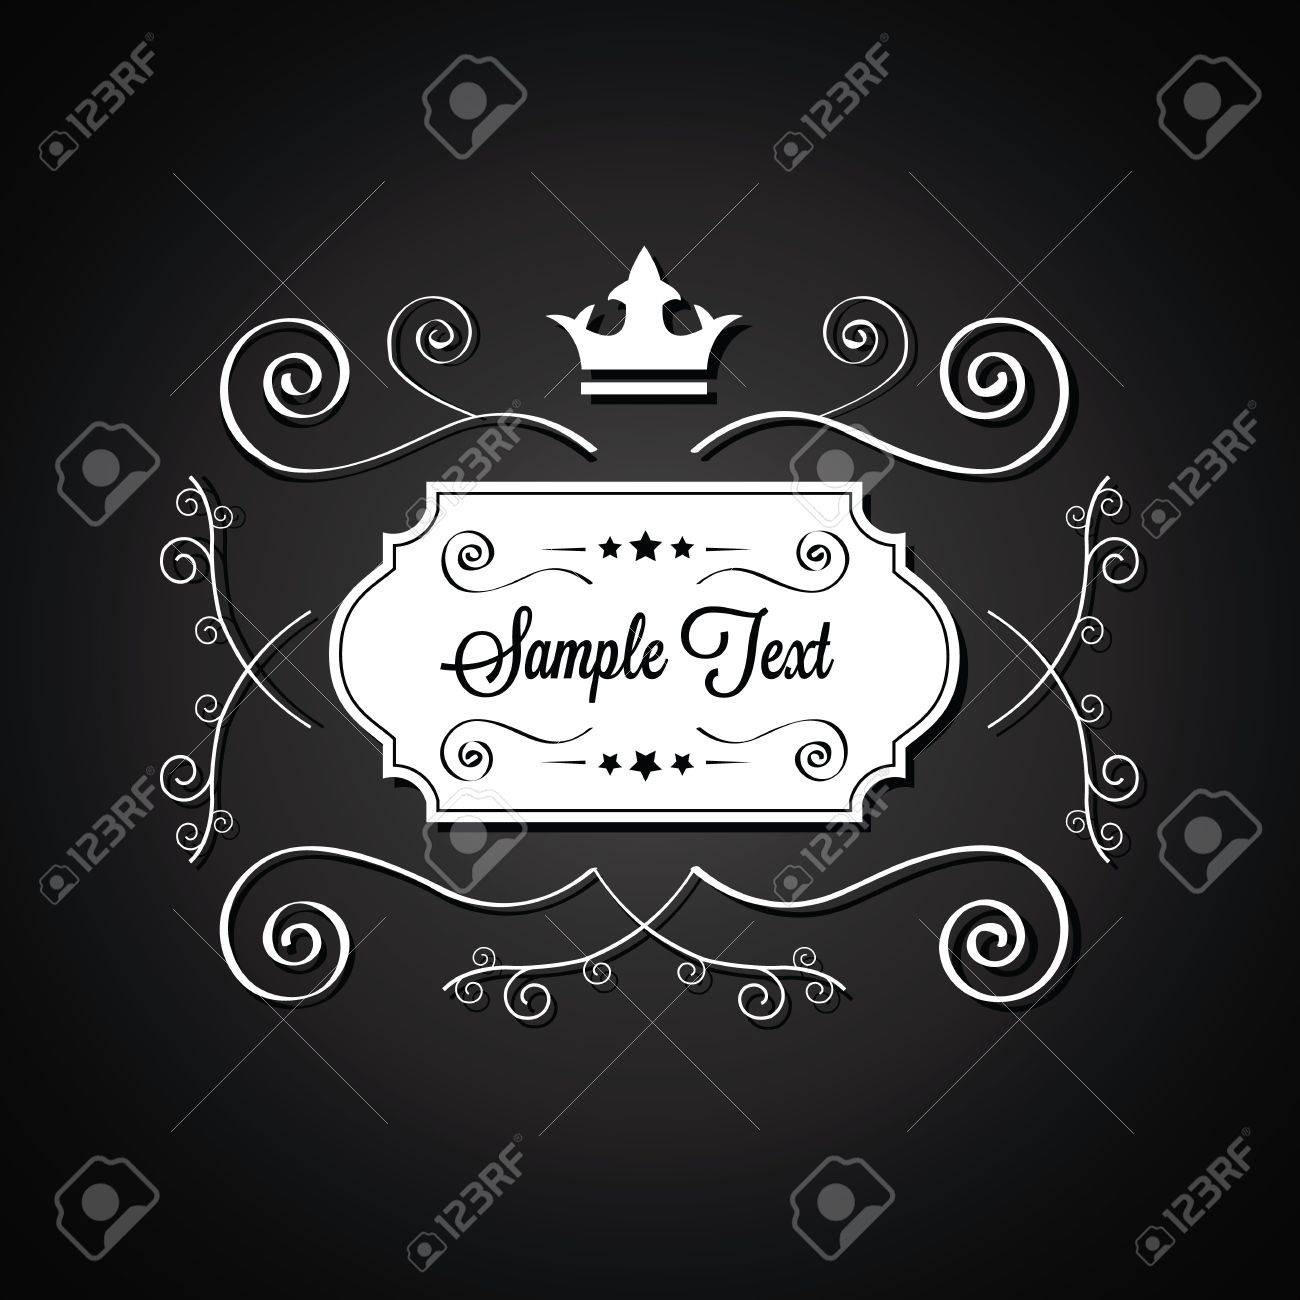 Black Vector Abstract Background for Sample Text Stock Vector - 21918548